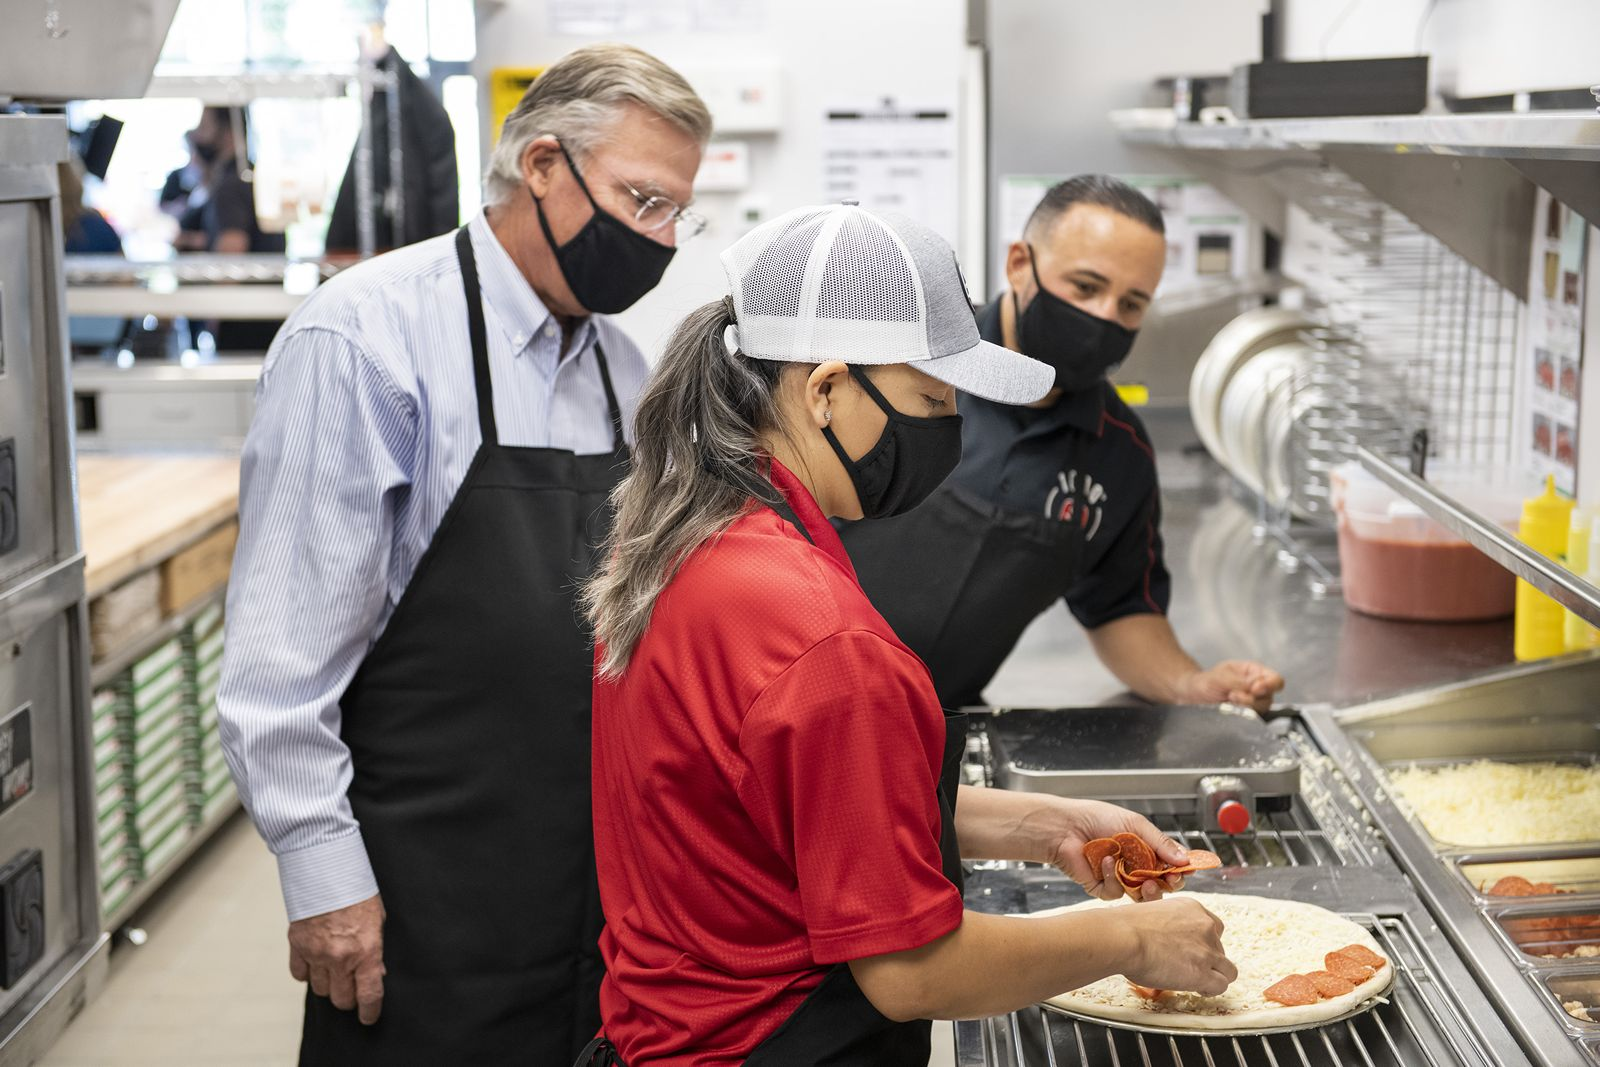 Marco's Pizza CEO Jack Butorac, left, and franchisee Rafi Vargas, right,  look on as franchisee Kattya Barbaran prepares a pizza, Tuesday, October 20, 2020, in Kissimmee, Fla. Vargas and Barbaran are owners of Marco's Pizza's 1000th store and are residents of Kissimmee.